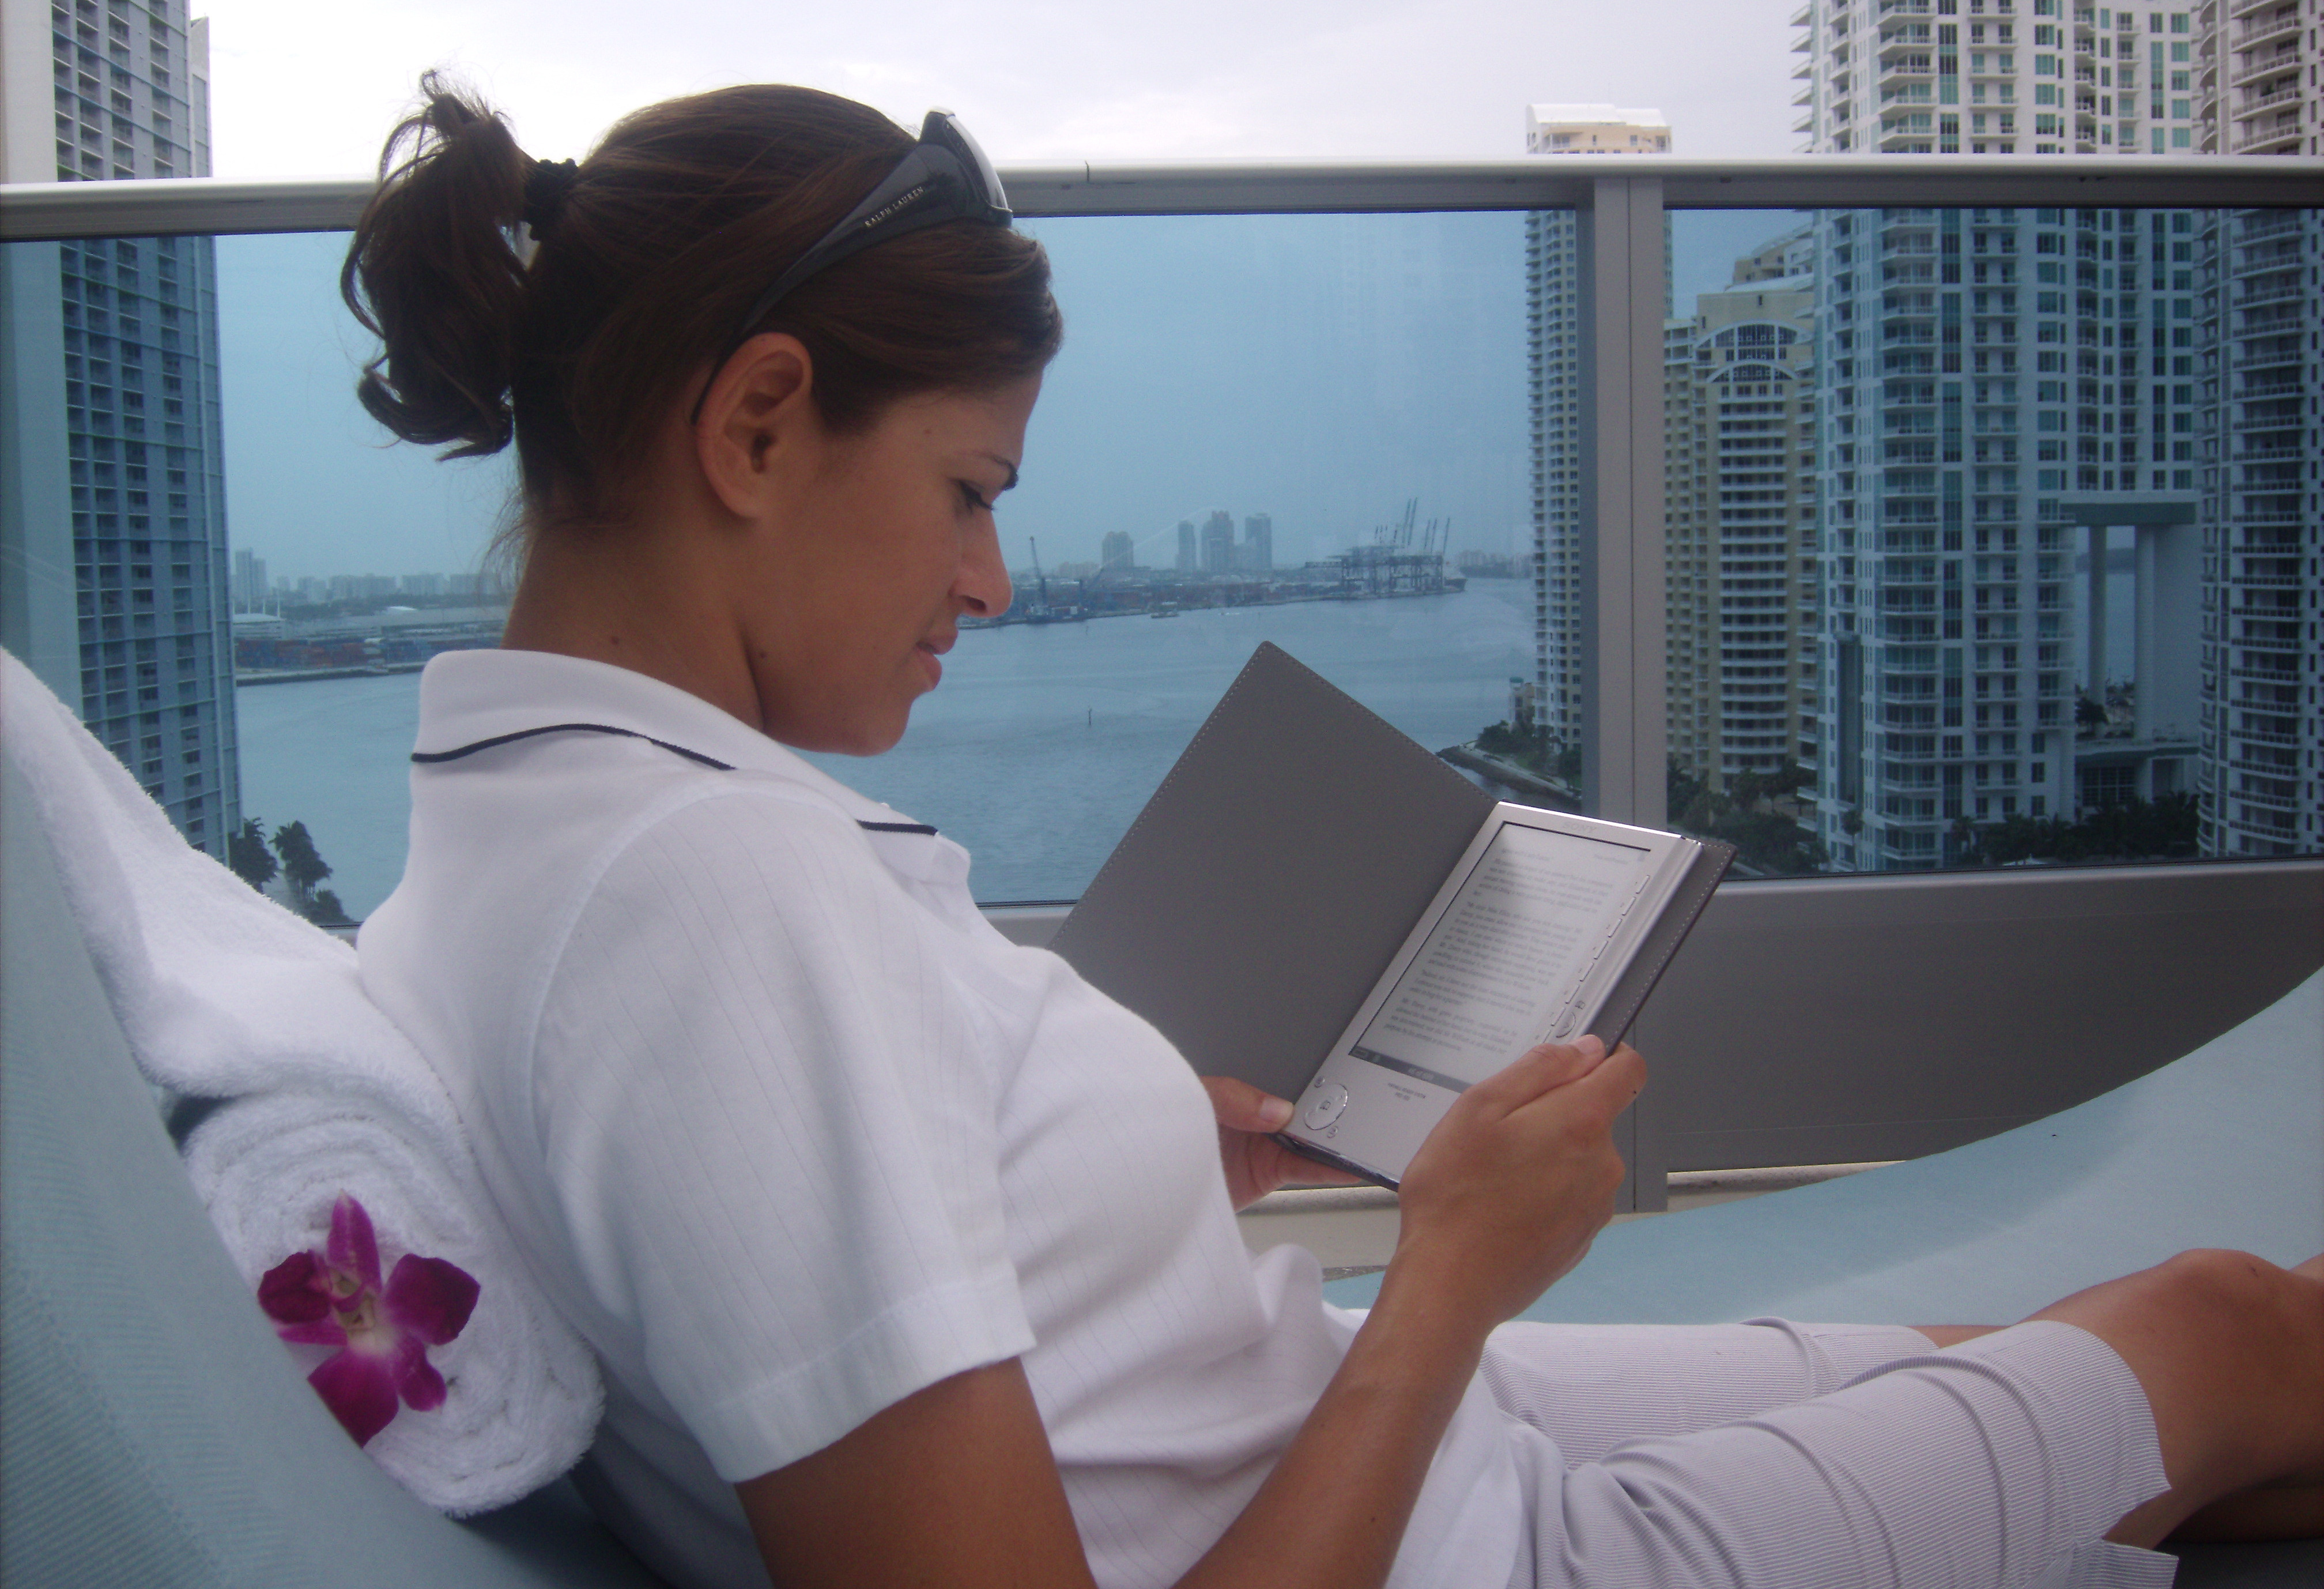 Sony Reader at Epic Hotel